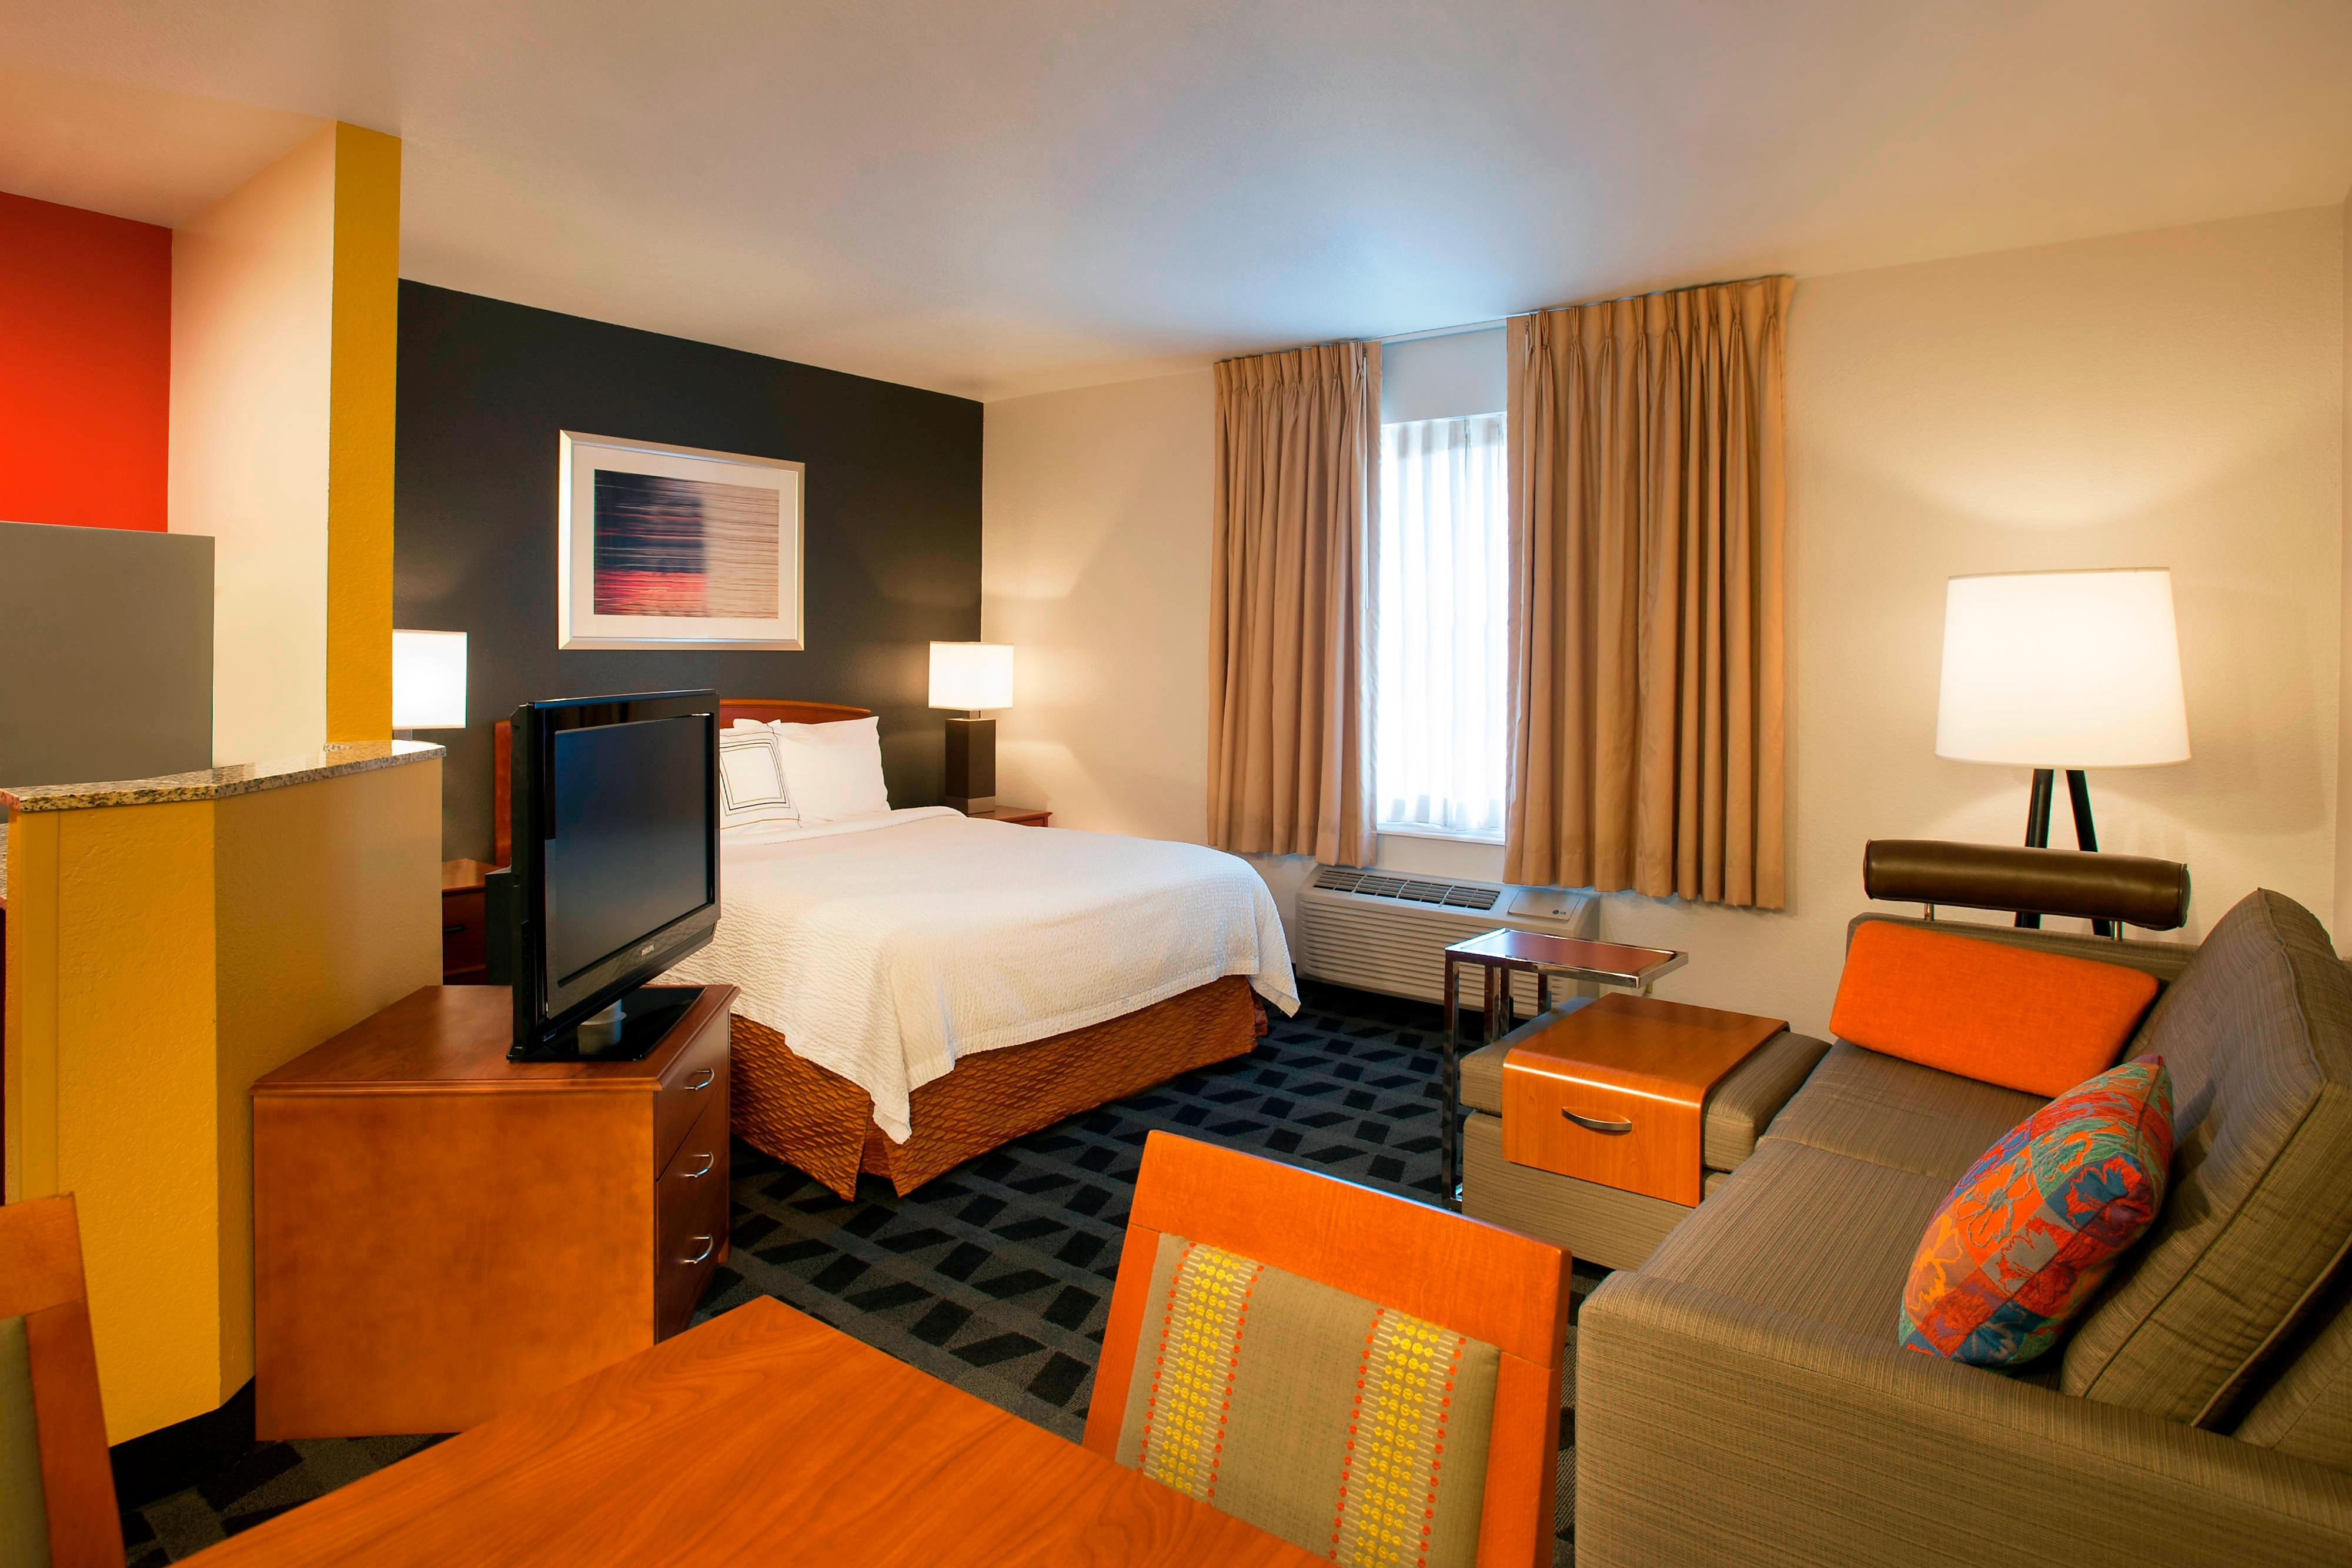 northern virginia hotel towneplace suites dulles airport. Black Bedroom Furniture Sets. Home Design Ideas